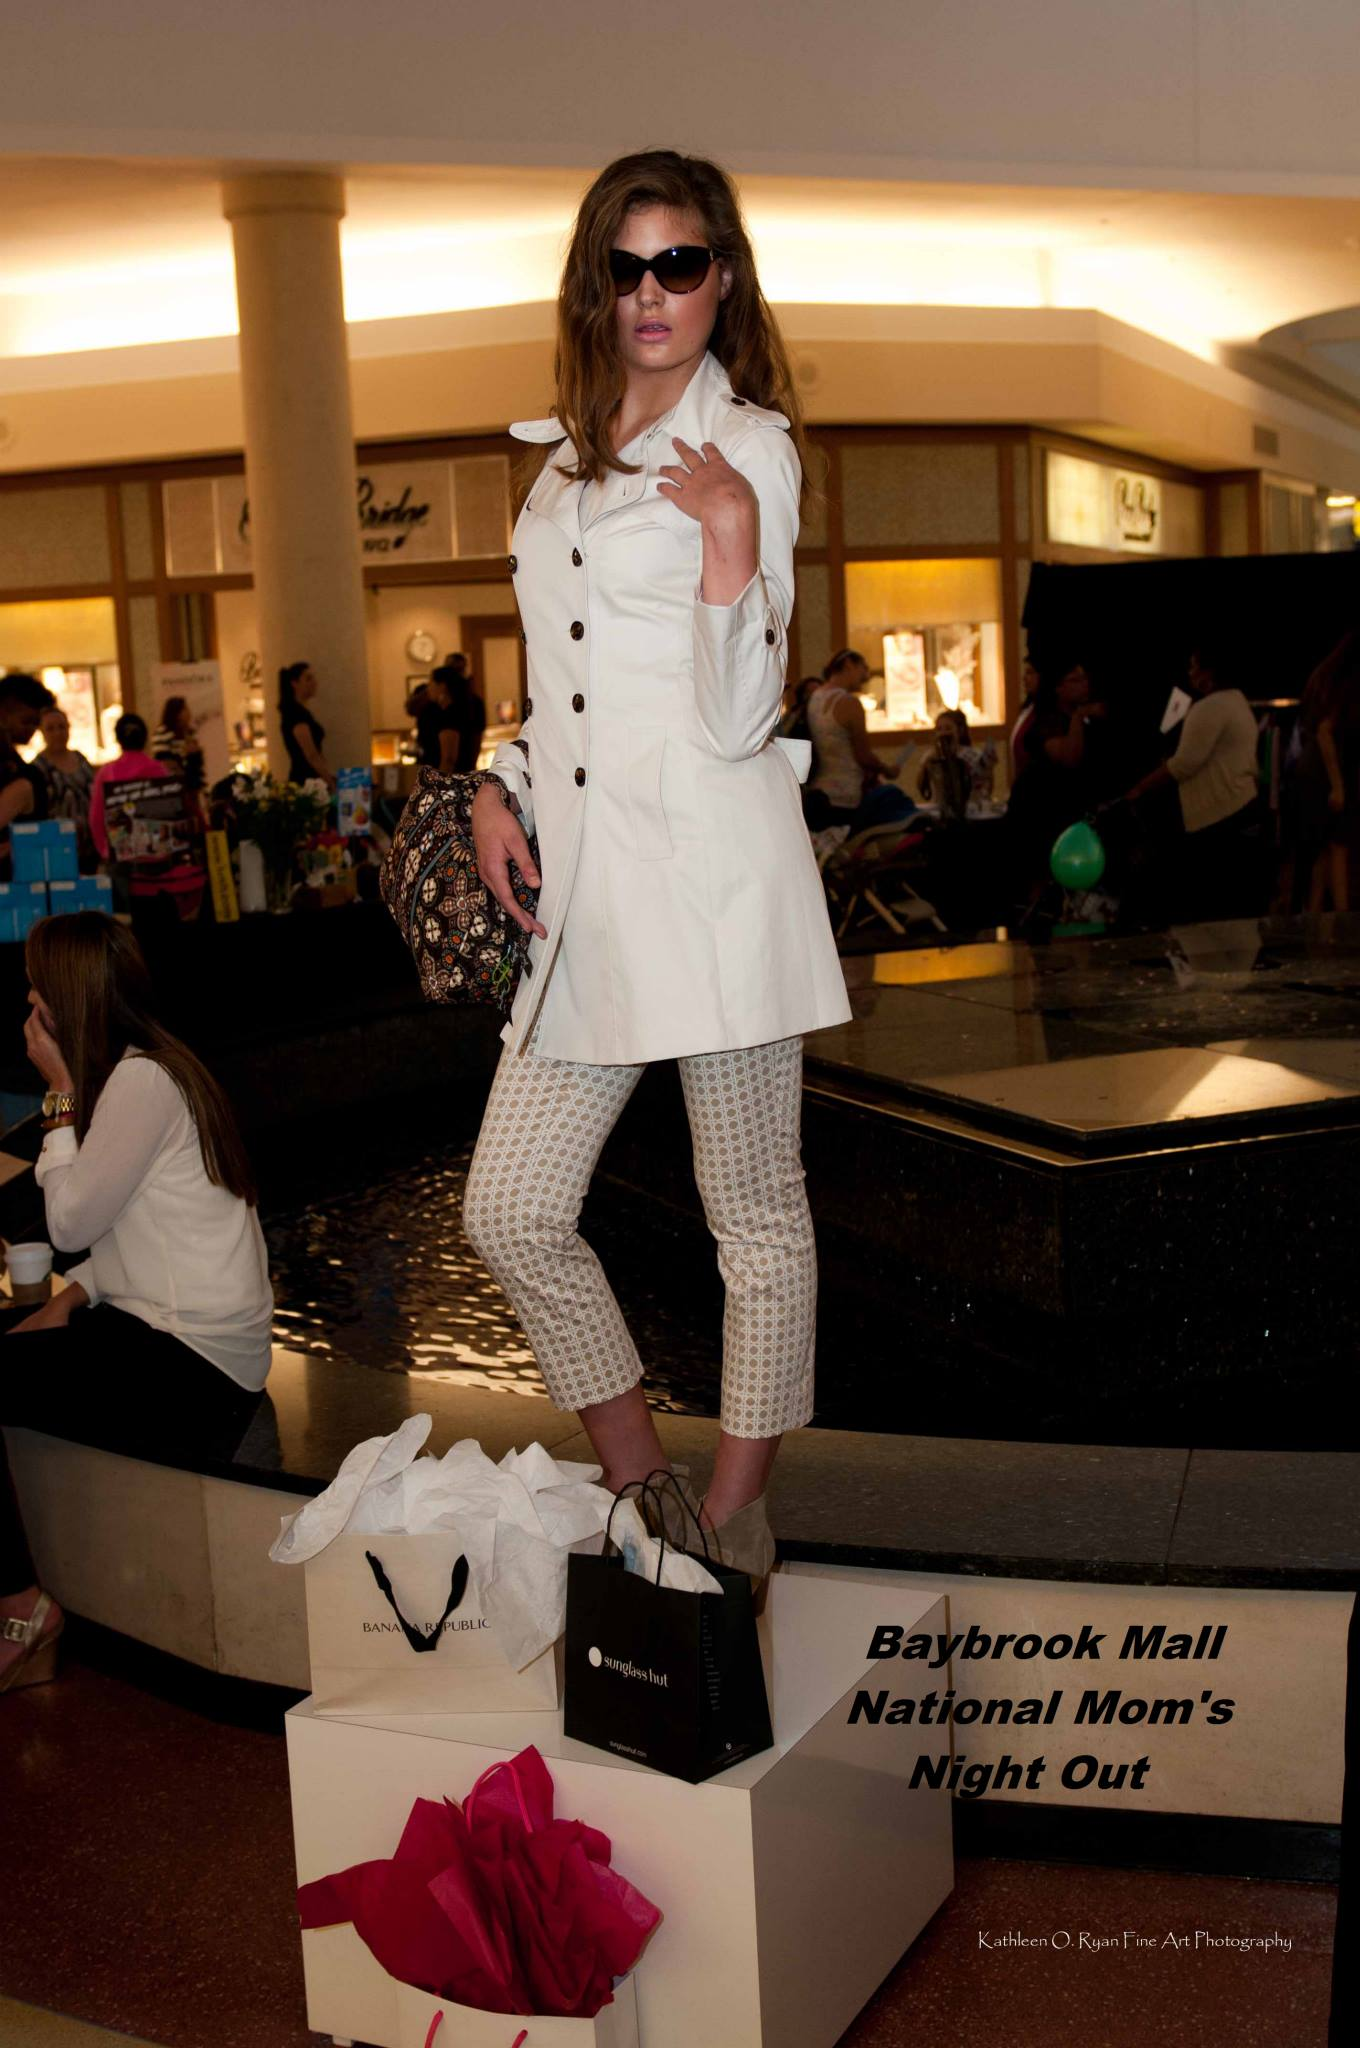 Baybrook Mall Nat'l Mom's Night Out